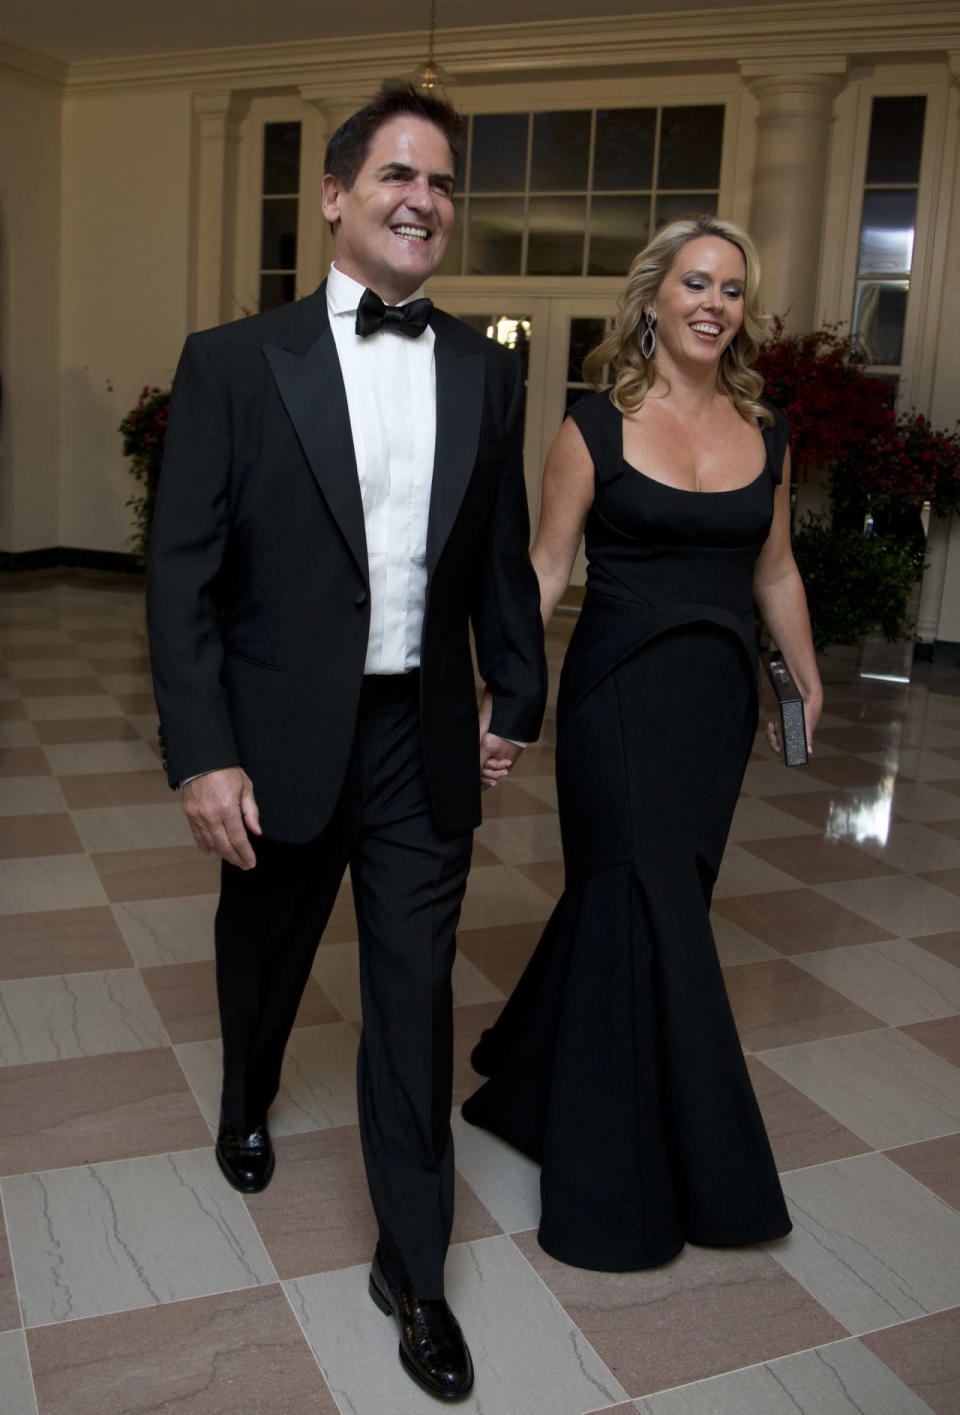 NBA's Dallas Maverick owner Mark Cuban and his wife Tiffany Cuban at the State Dinner in honor of Chinese President Xi Jinping, in the East Room of the White House in Washington, DC. Mark Cuban's wife Tiffany wore a similar silhouette to Michelle Obama's Vera Wang dress with a trumpet bottom on the skirt of her gown.